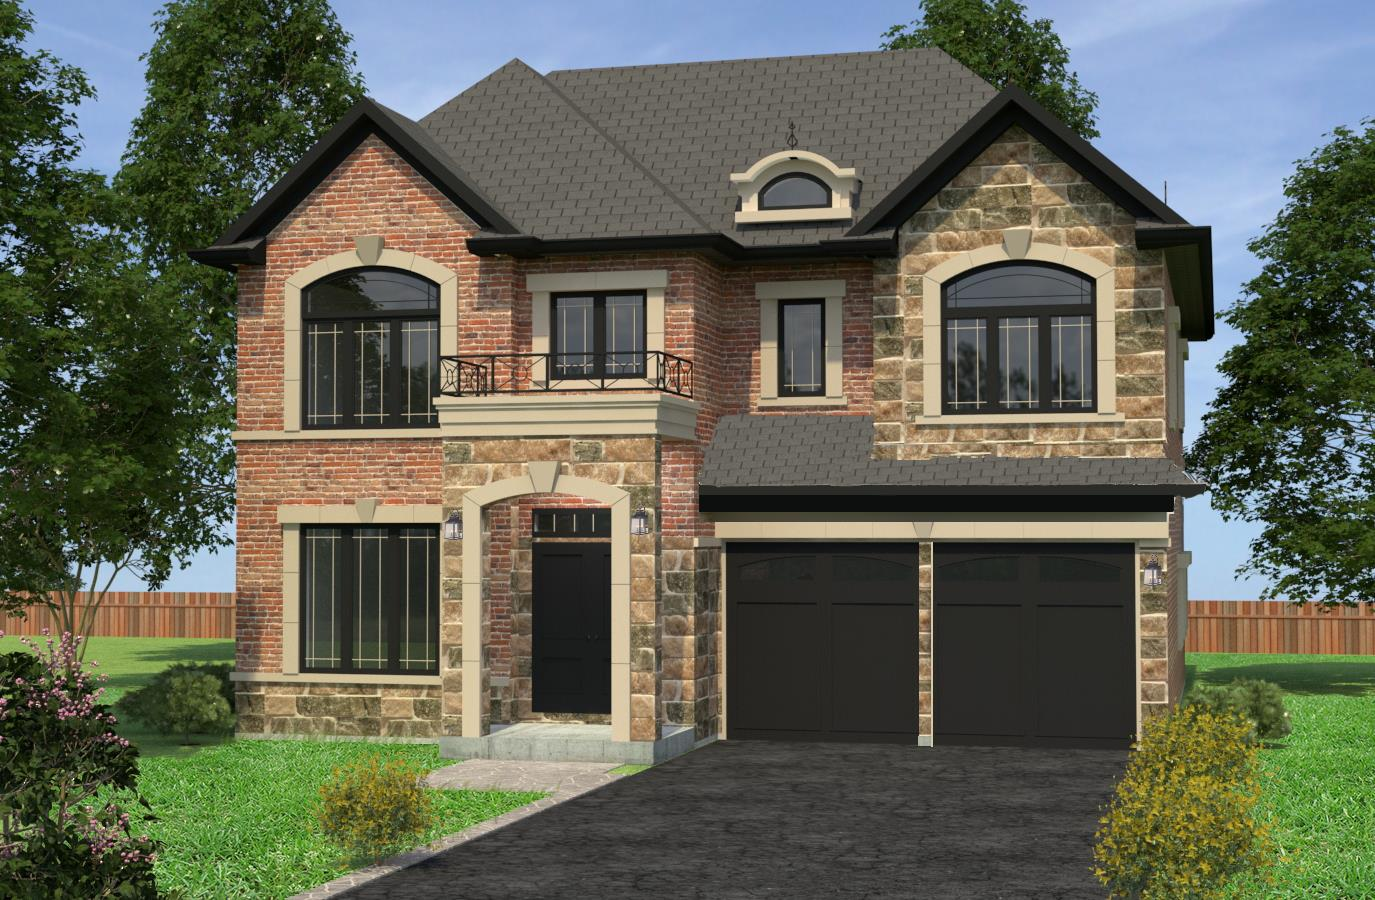 Orchard Lane Exterior Rendering